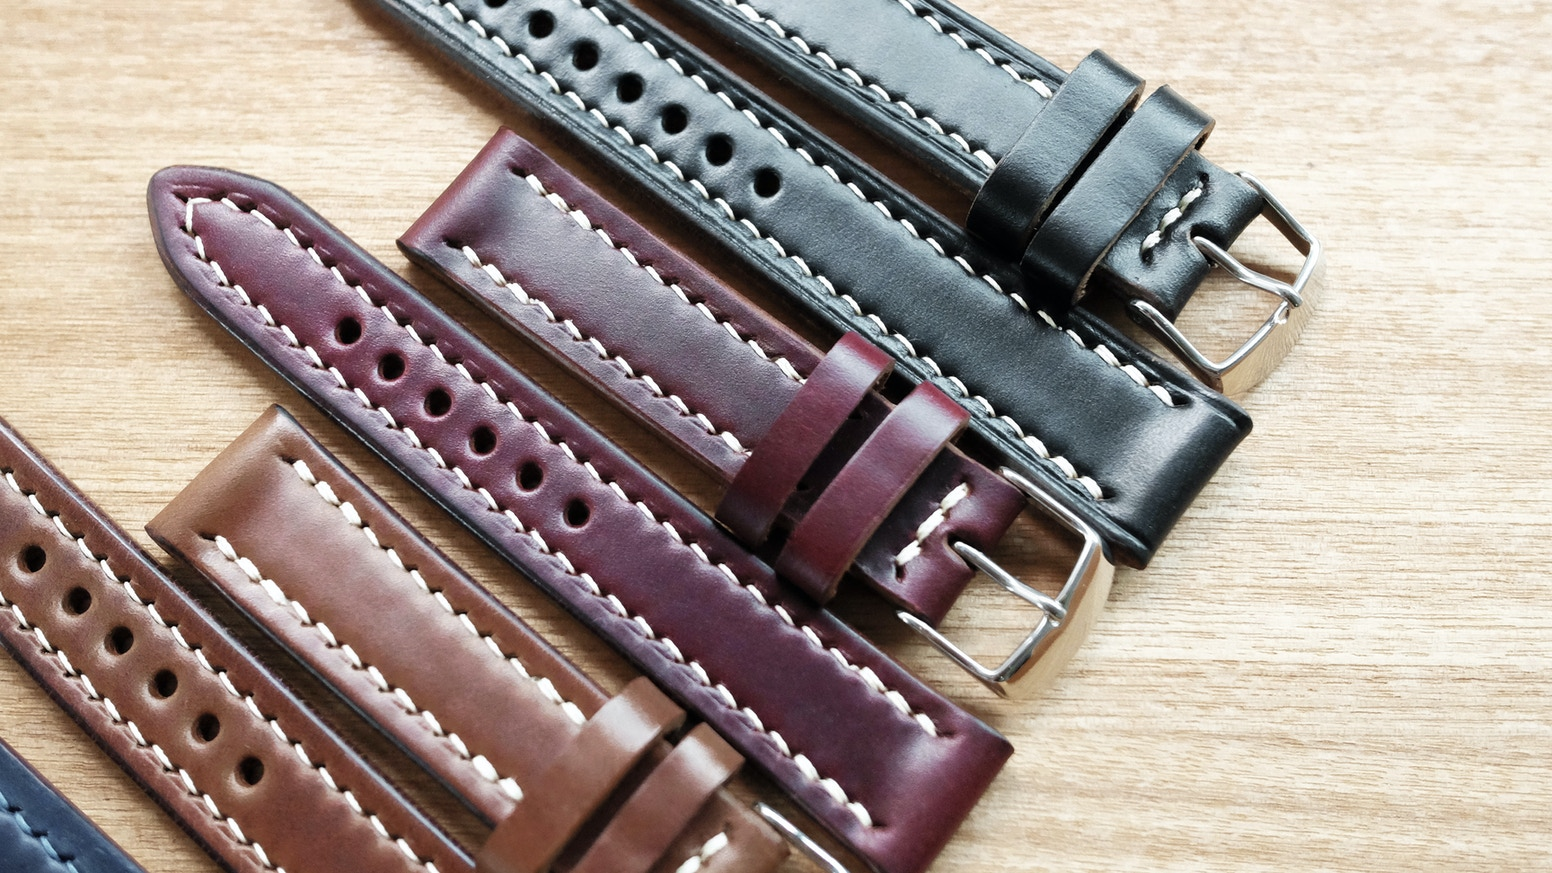 Looking for a well made watch strap? Look no further than our hand stitched straps using the World Famous Horween Leather.